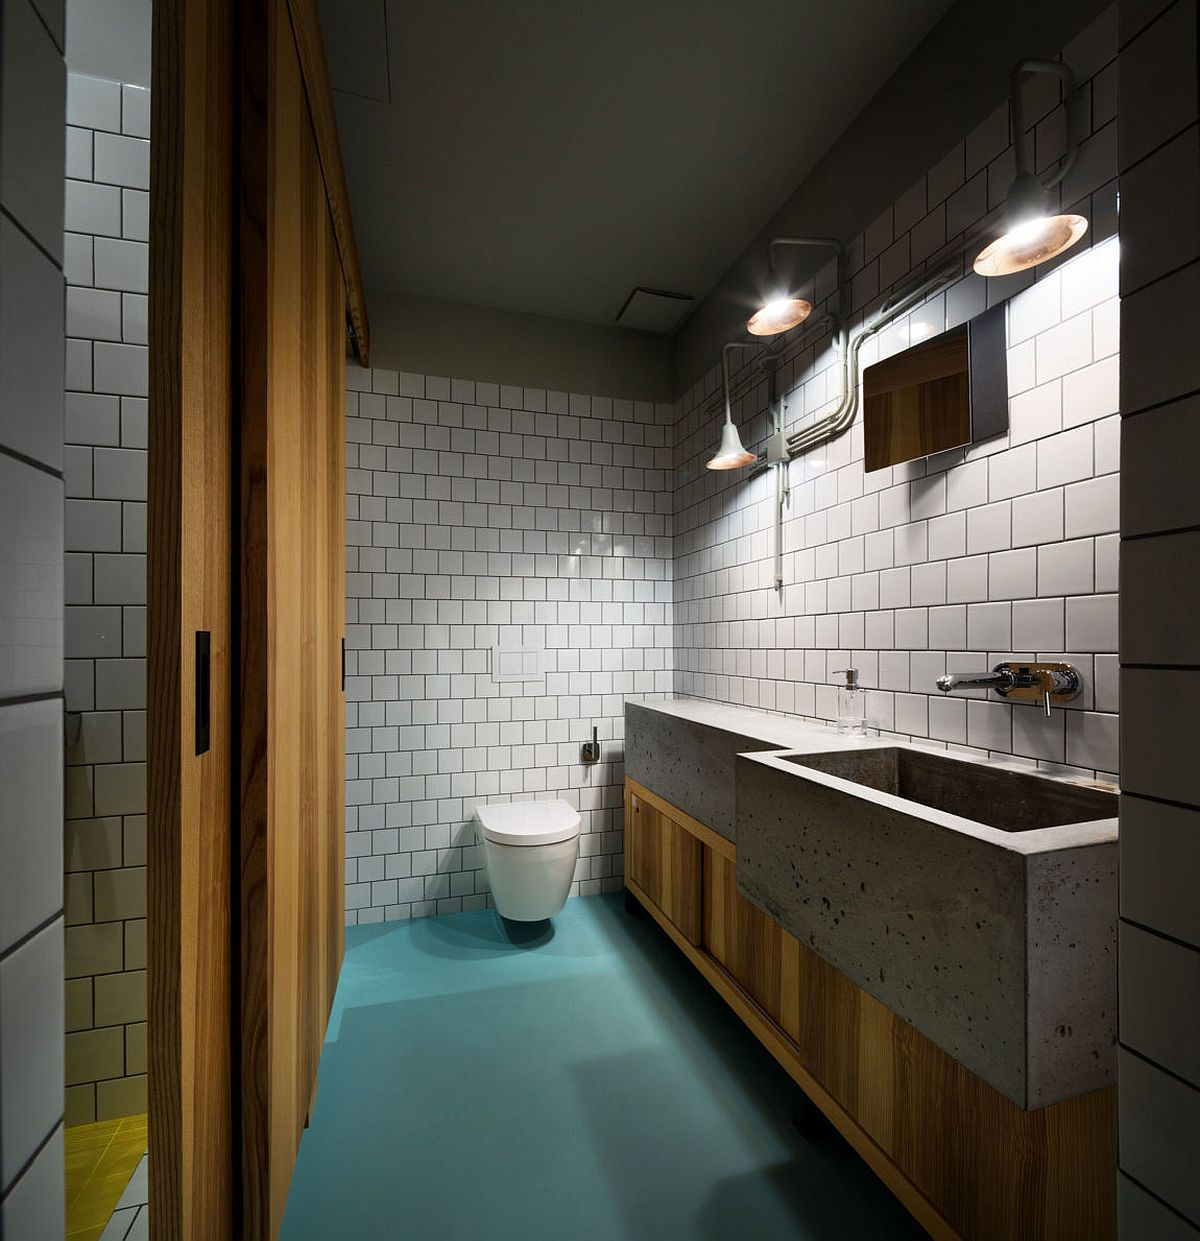 Cement-sinks-bring-unique-style-to-the-contemporary-bathroom